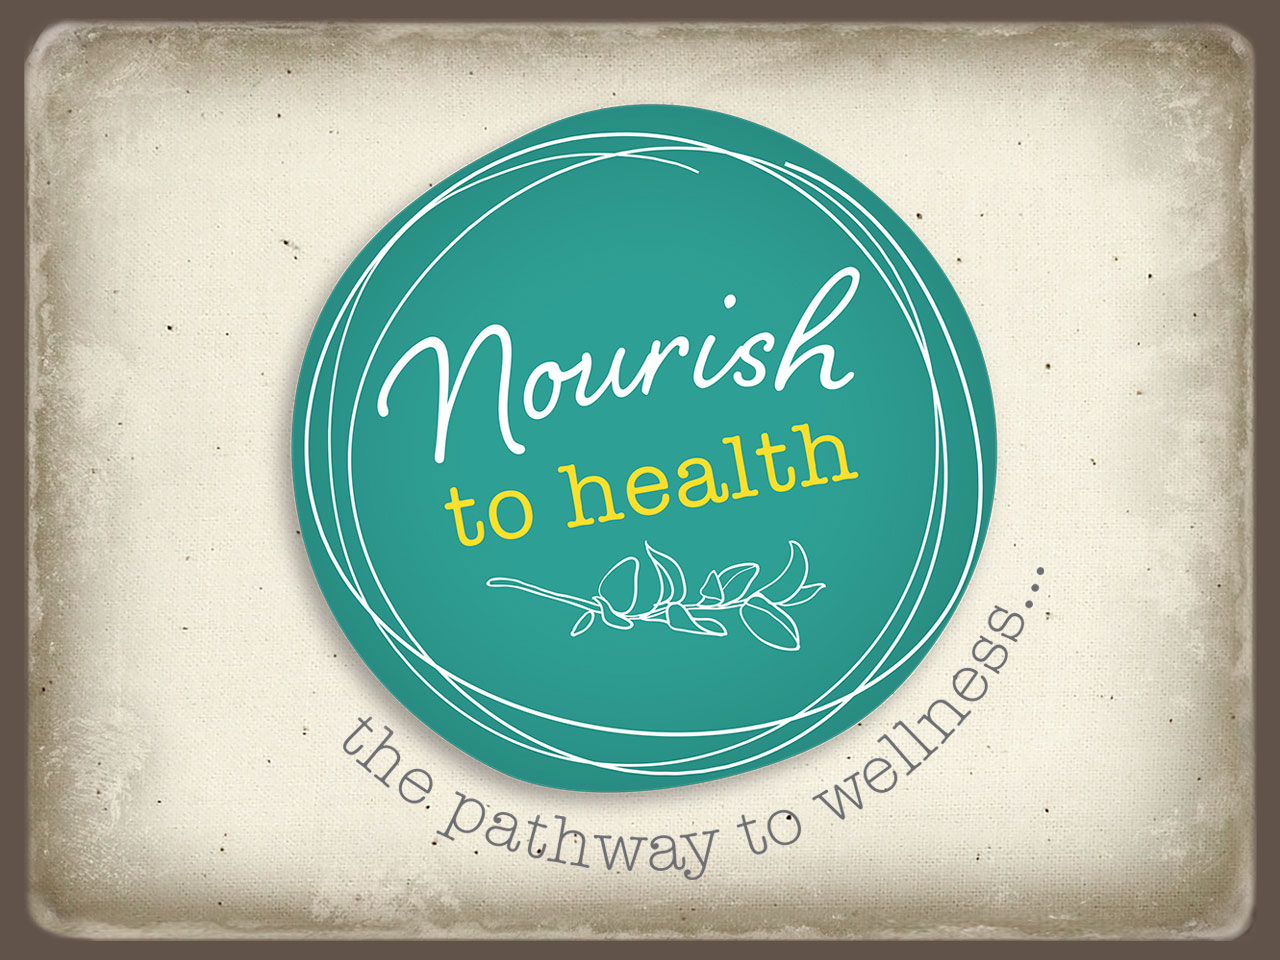 NOURISH TO HEALTH - Brand design, Social Media package and business collaterals.